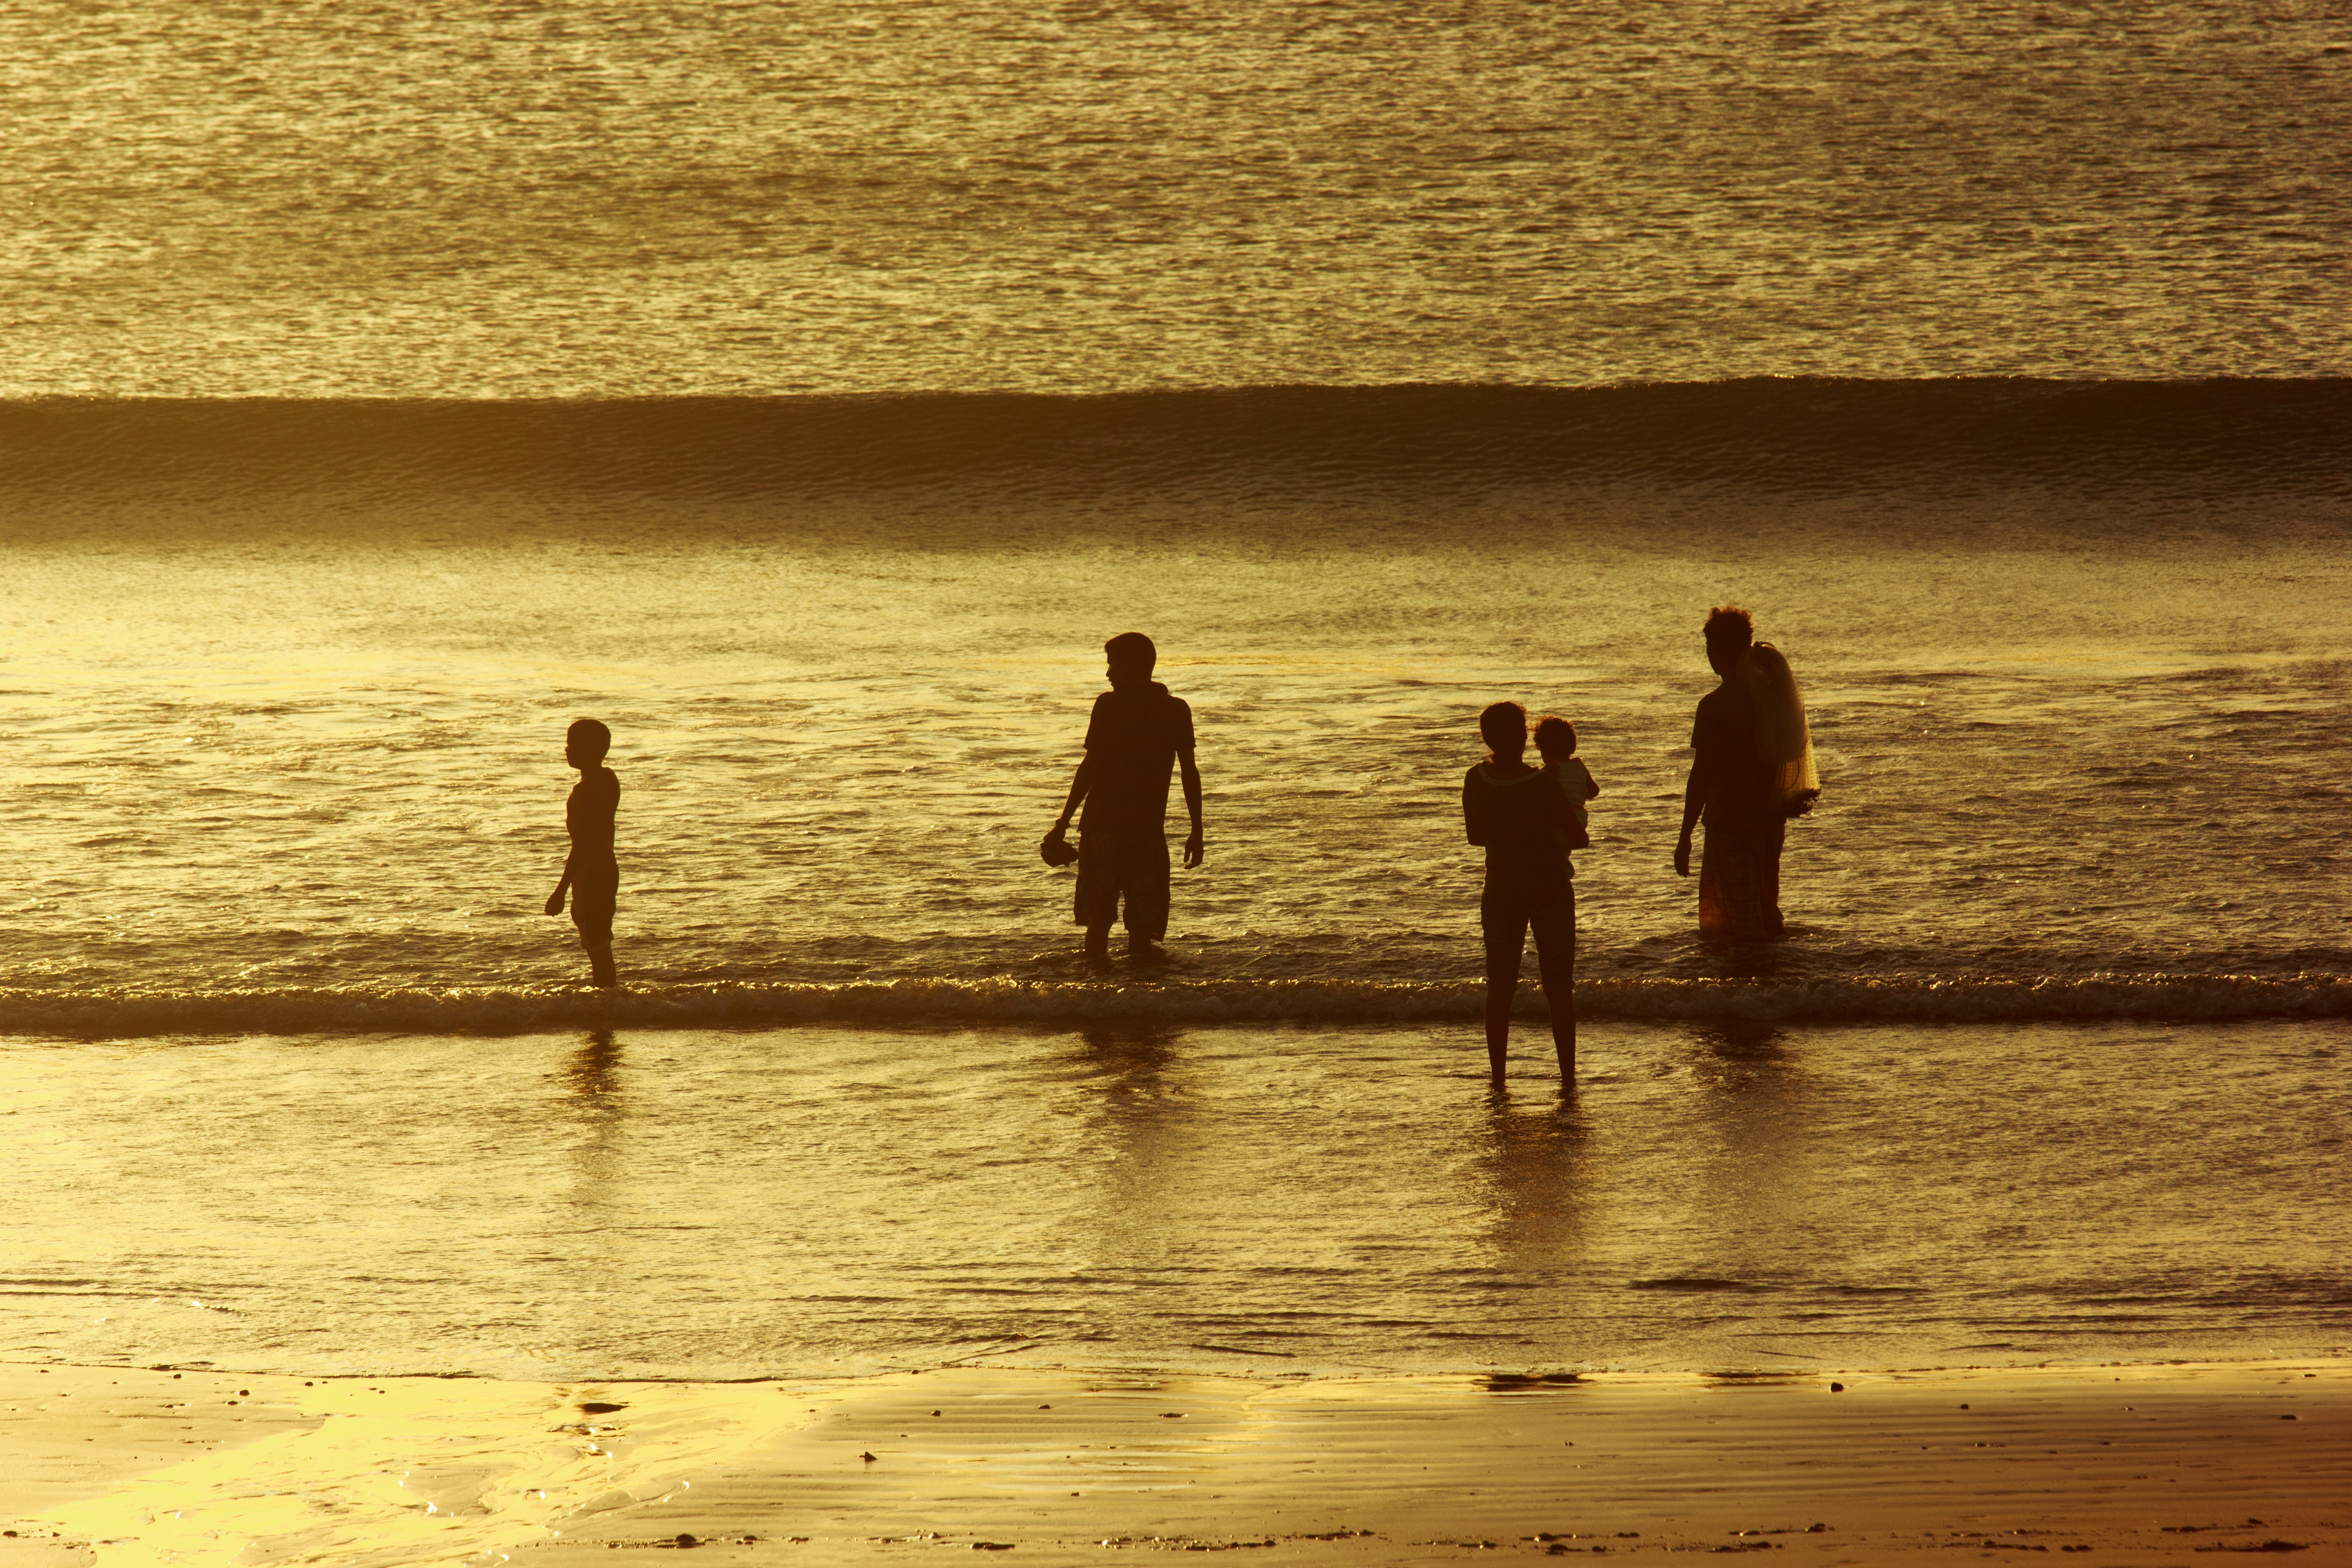 people walking on shore during golden time